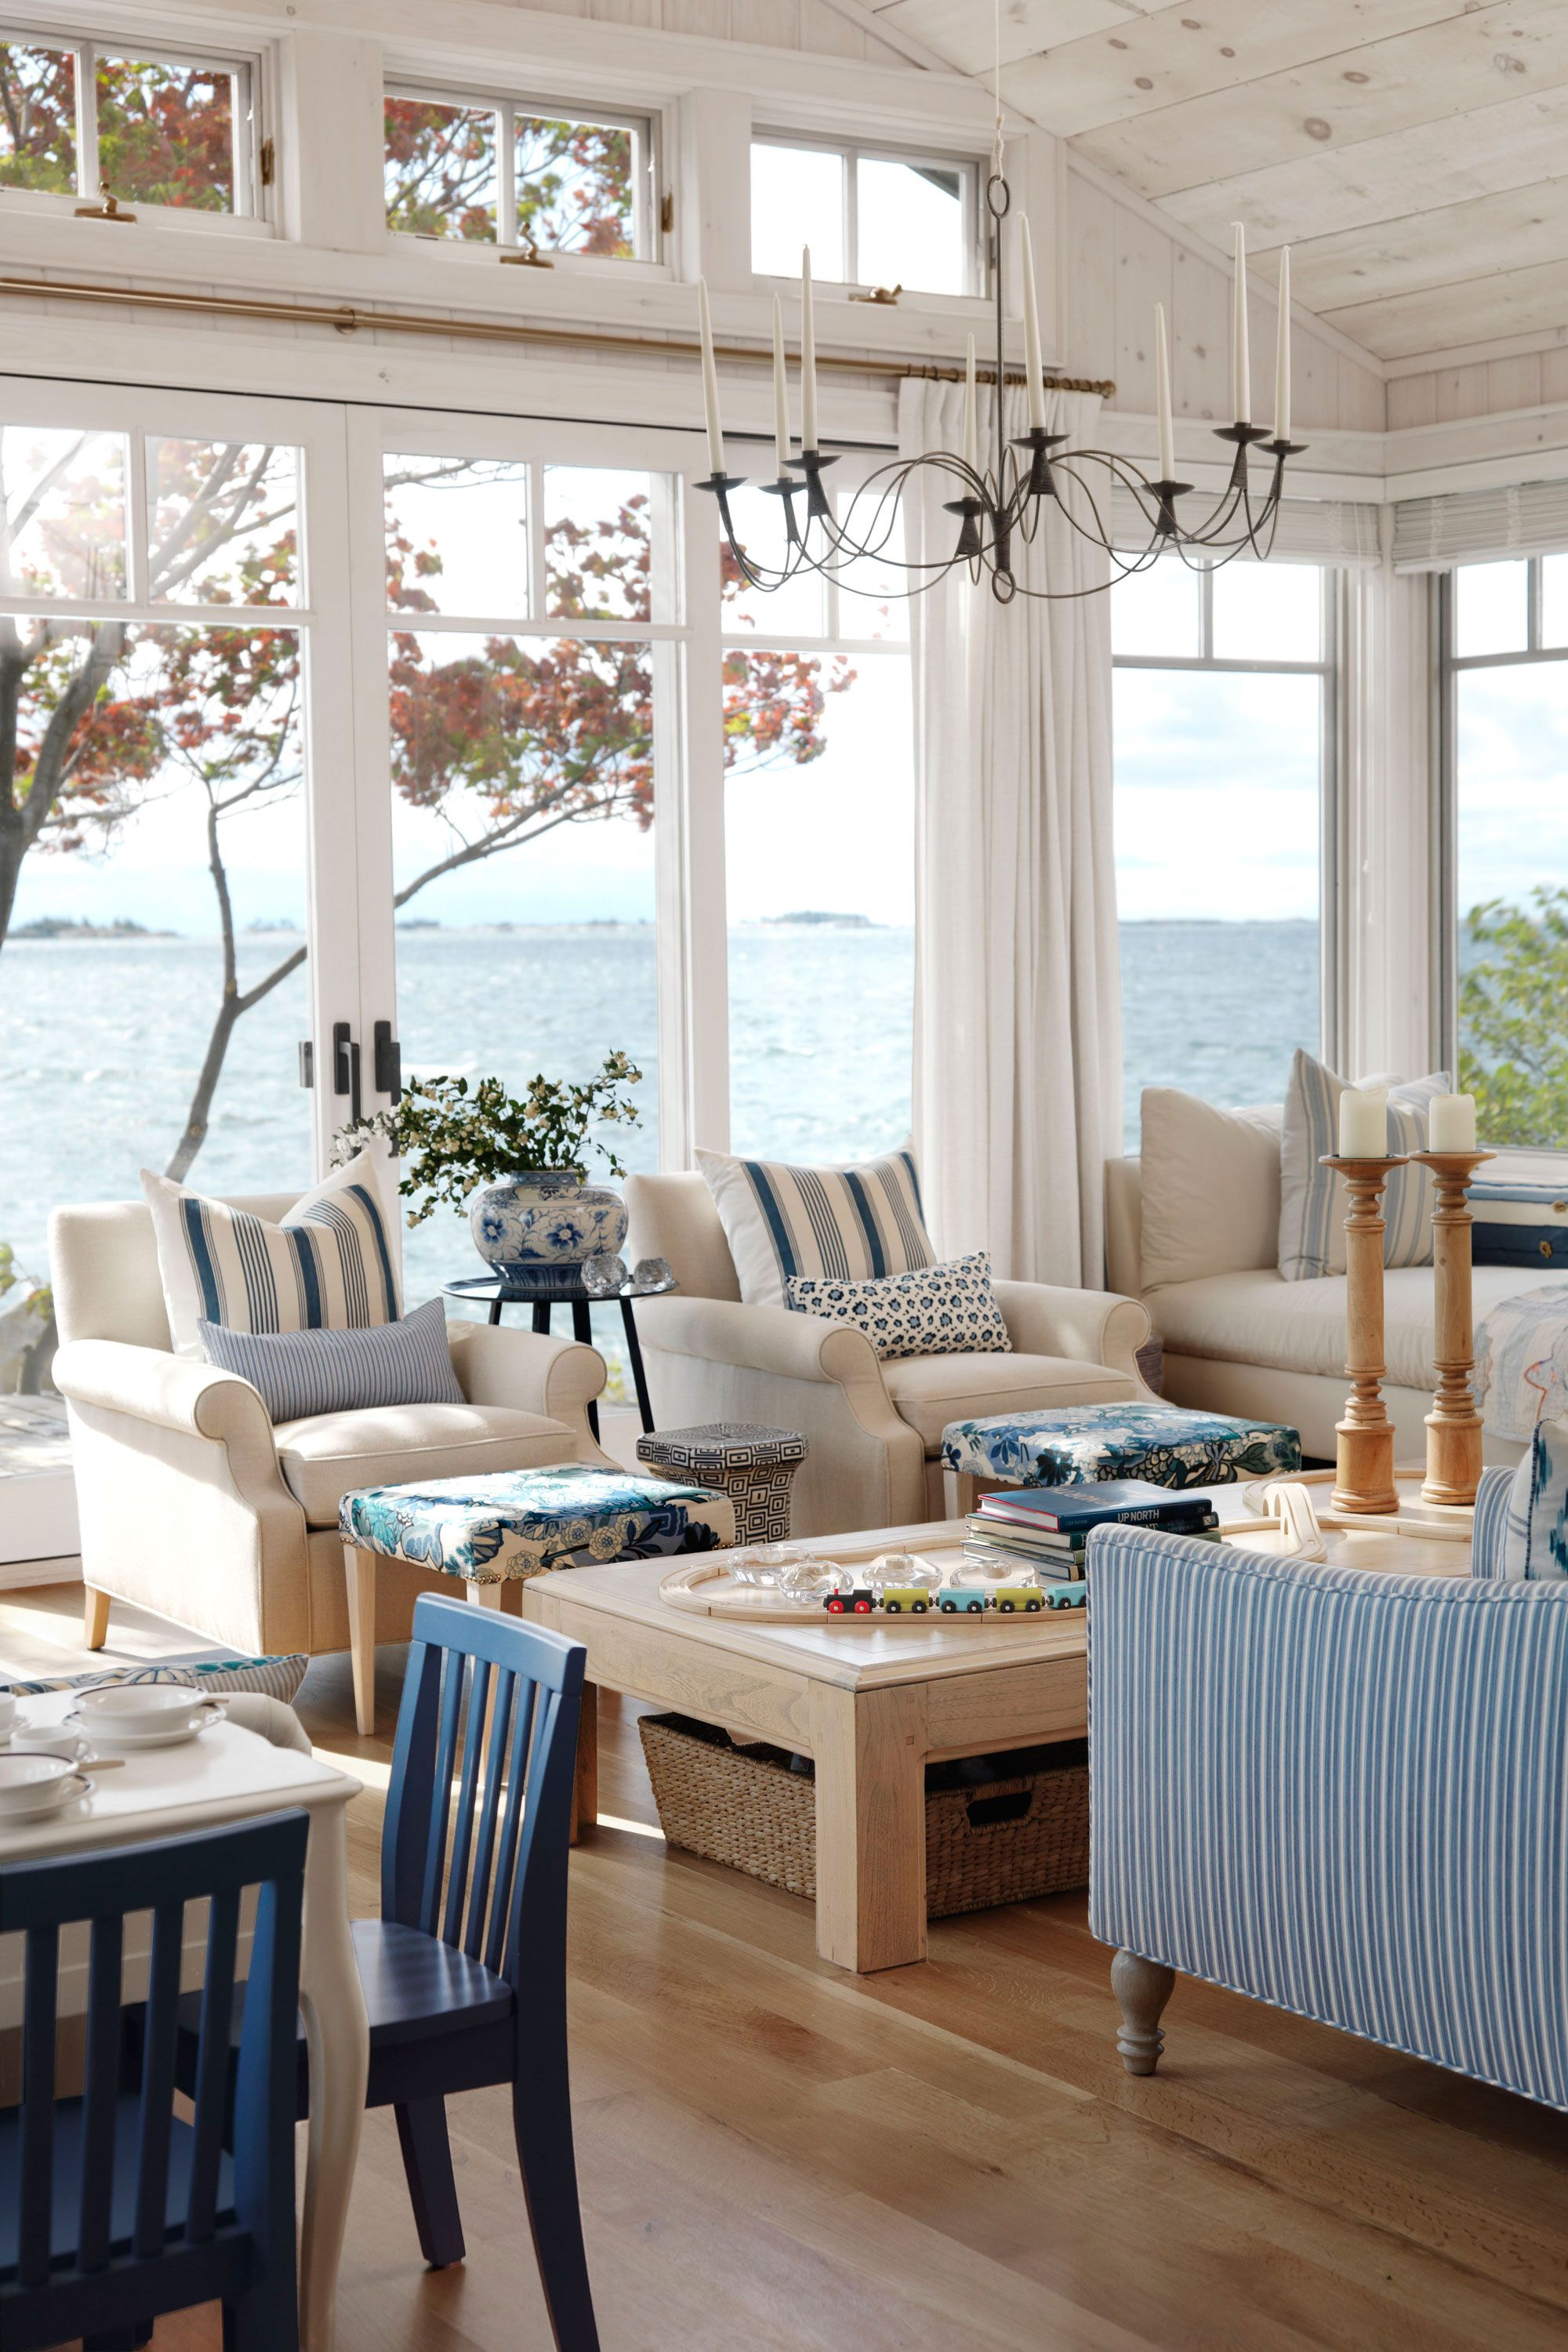 42 Beach House Decorating Ideas